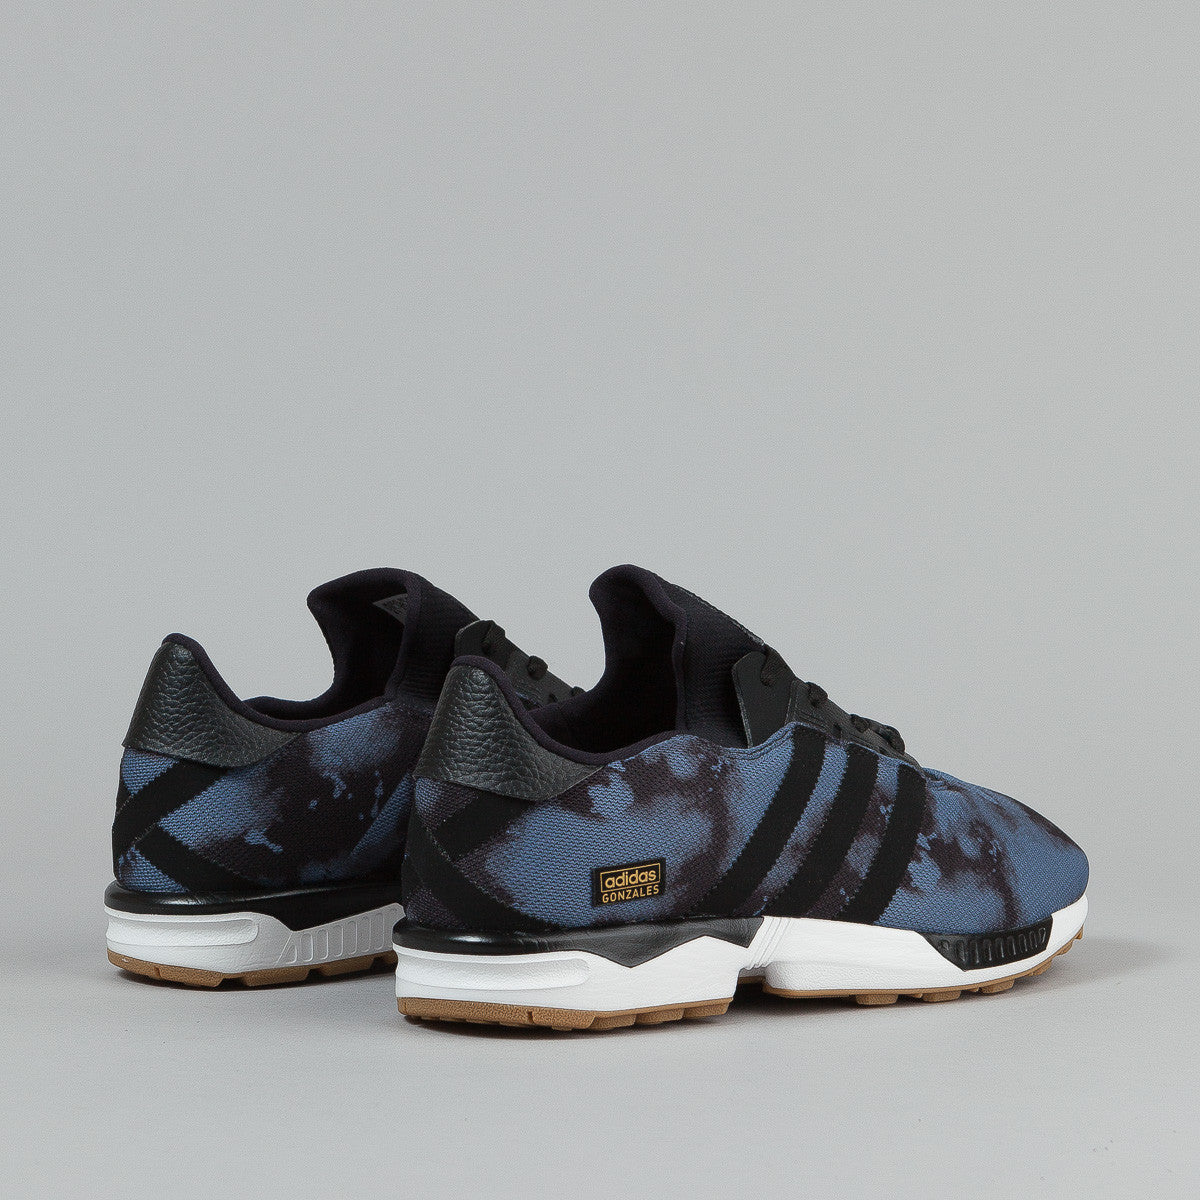 adidas-zx-gonz-shoes-fade-ink-core-black